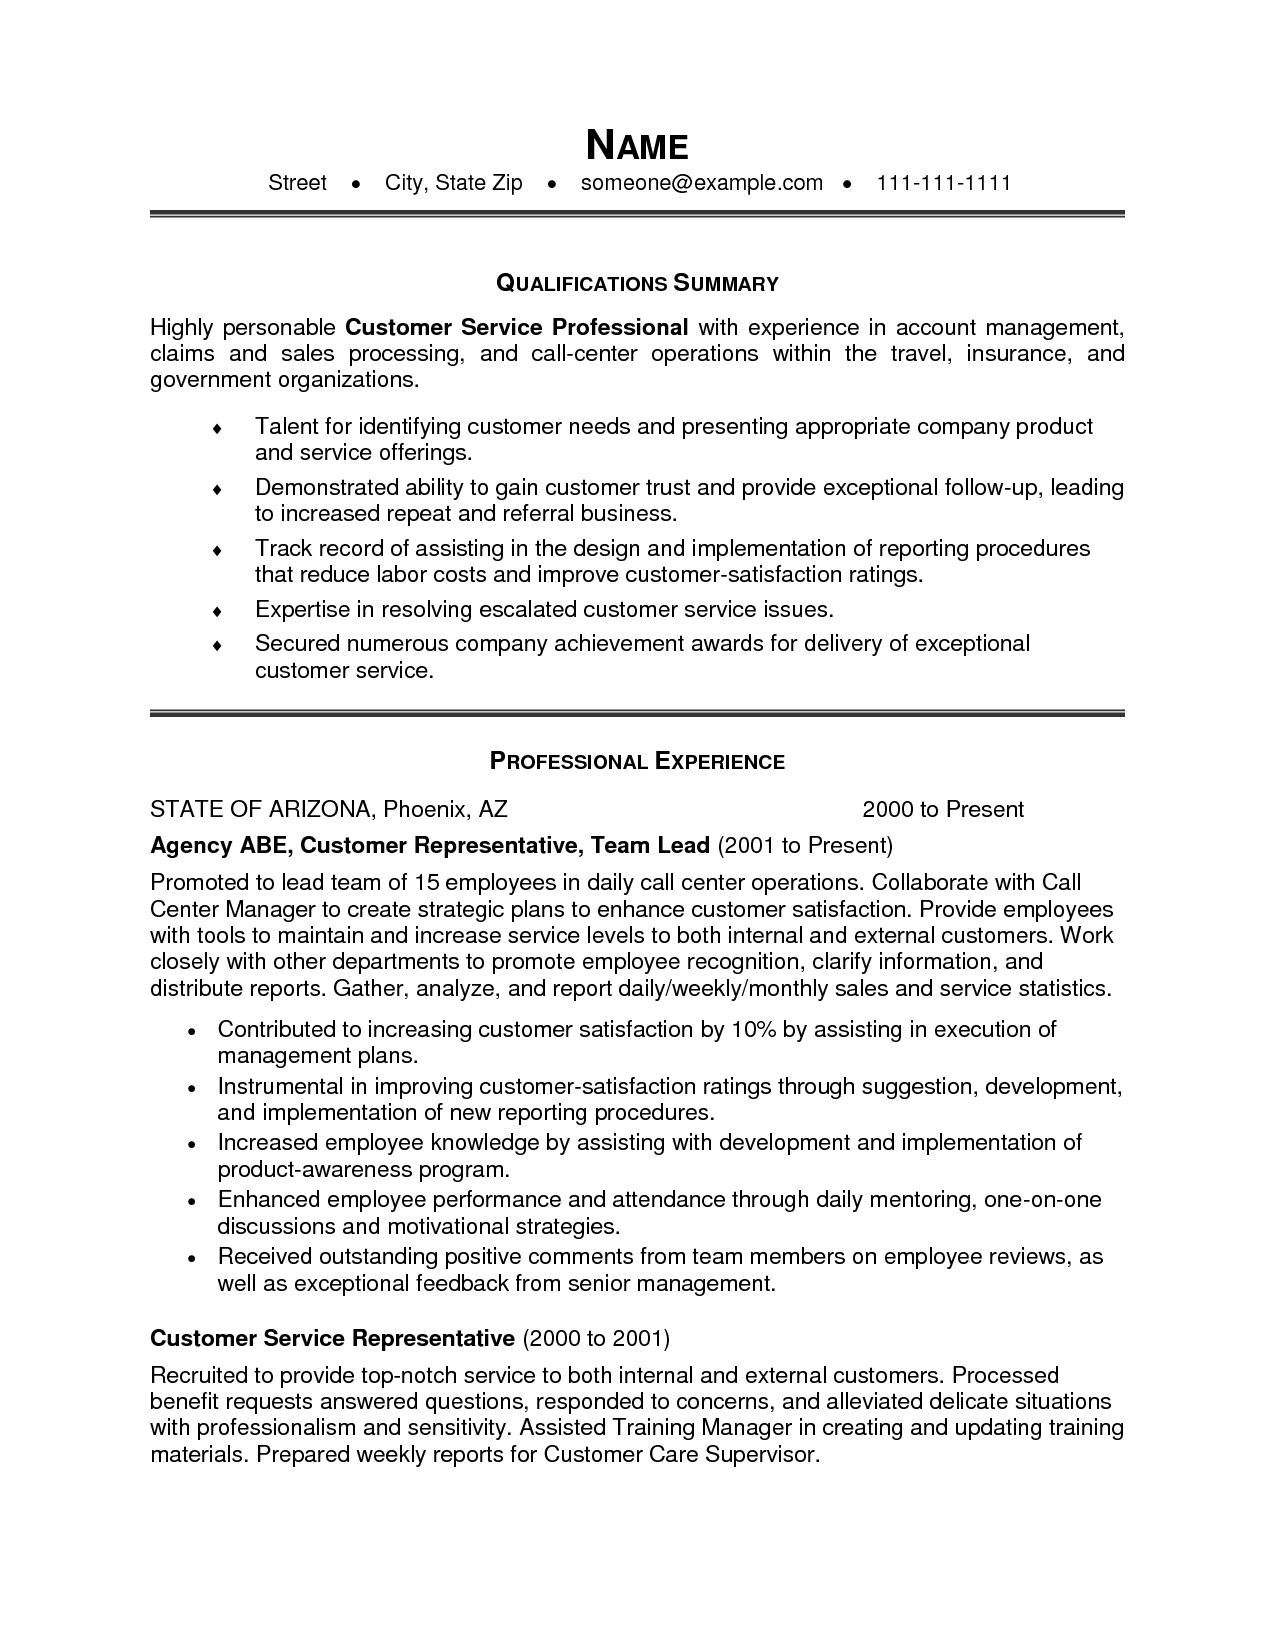 Customer Service Resume Summary Examples Resume Summary Examples Customer  Service 18ba541c5  Resume Example Customer Service